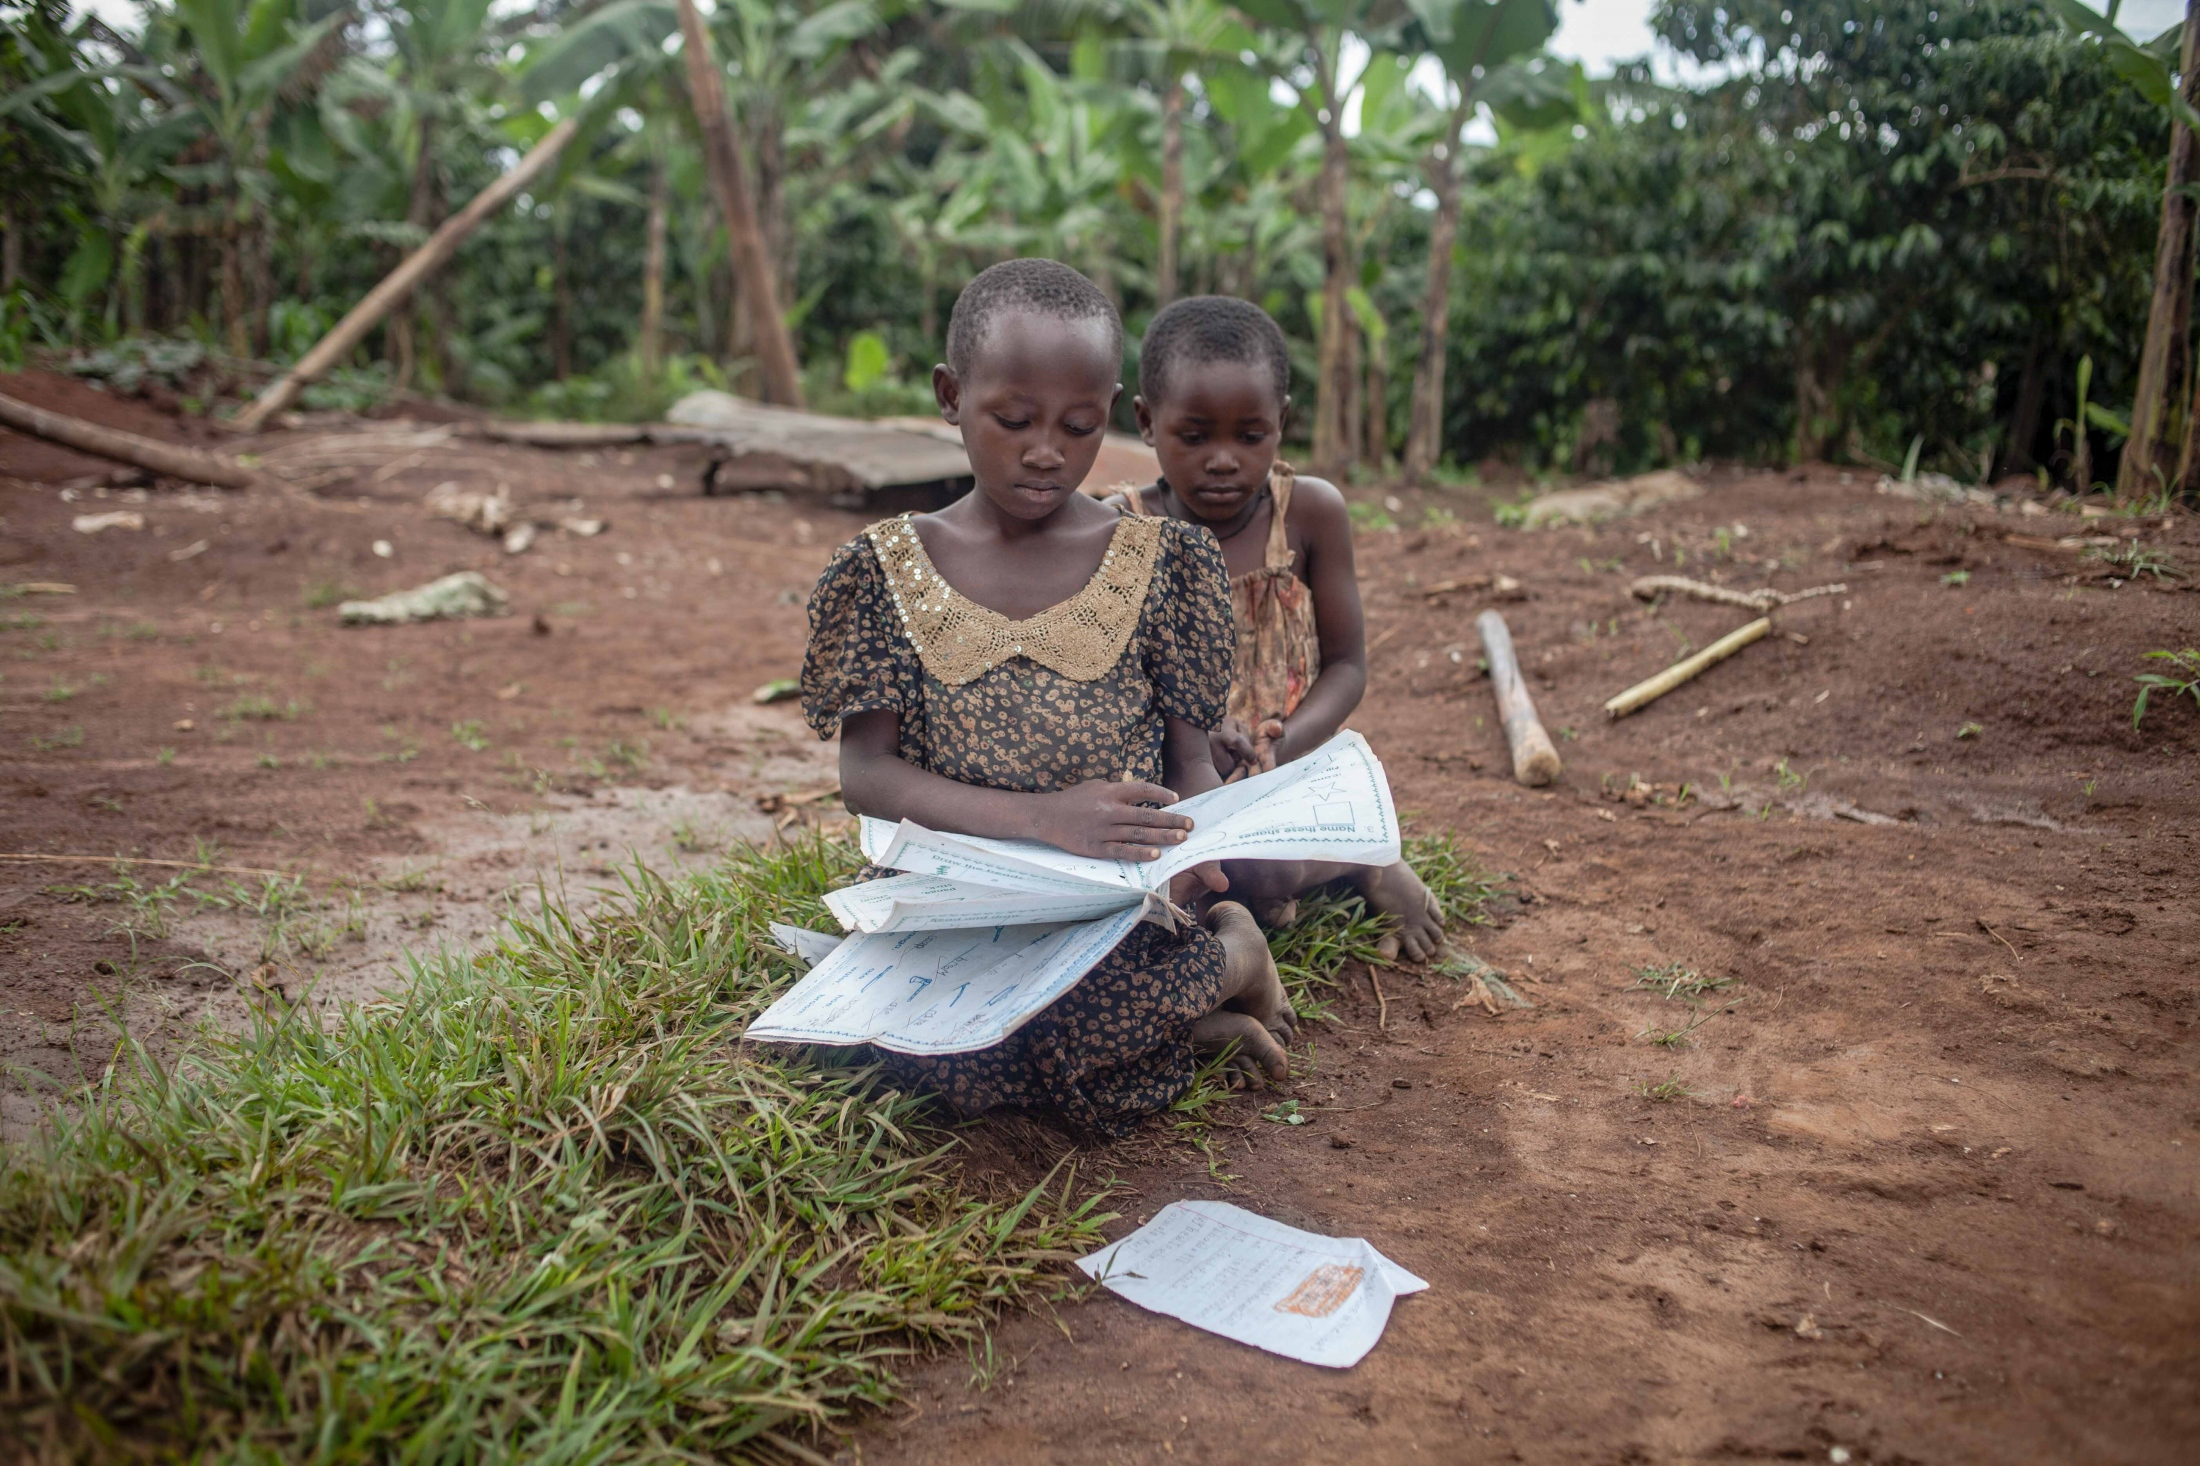 Many children in rural areas miss out on finishing their homework because of an absence of a safe light source in the house. Access to clean energy is very much needed in many areas of rural Uganda. For Let There Be Light International.